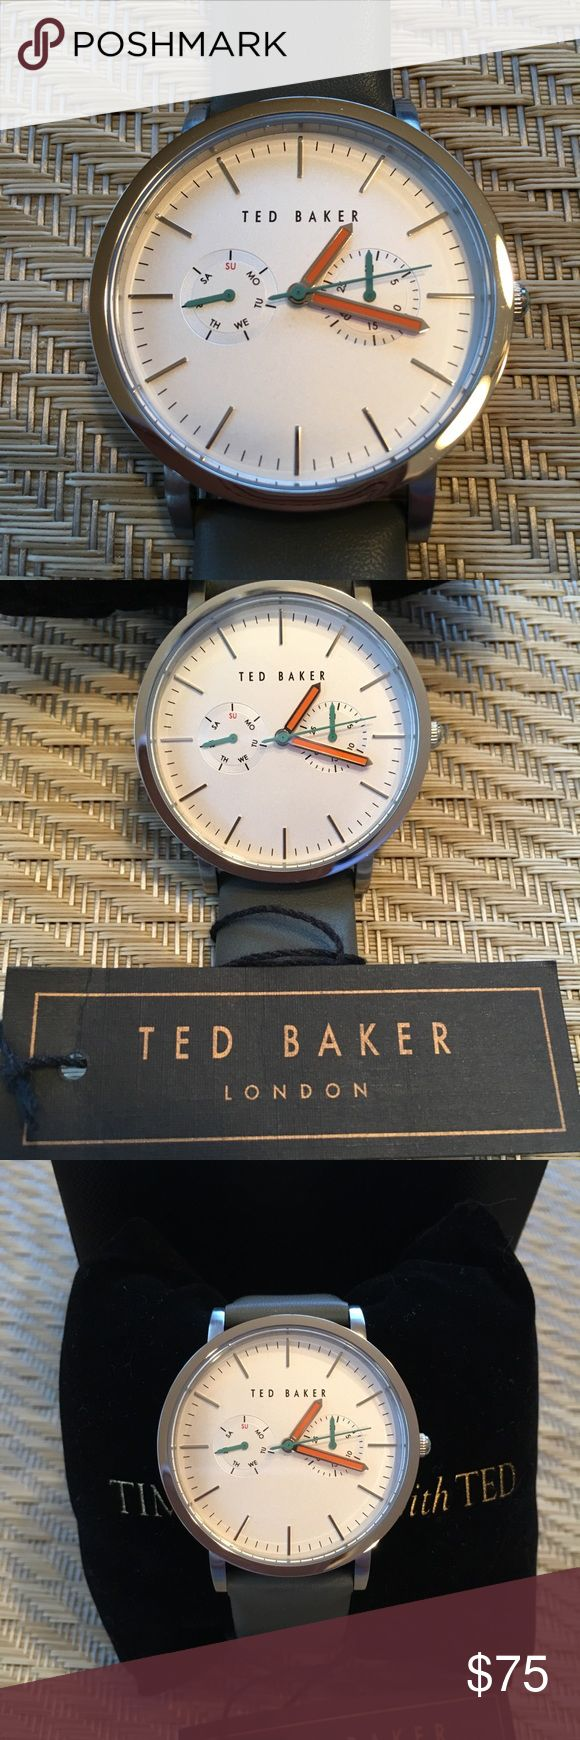 "NWT Ted Baker London unisex watch w/ leather band NWT beautiful unisex watch from Ted Baker London has a gorgeous greenish-grey genuine leather band and orange hands with green sweep hand. Stainless steel case. 30M water resistant. Protective plastic on back of case. Never worn, just needs a battery. Band measures 3/4"" wide, face measures 1-1/2"" wide. In original box snuggled around Ted Baker pillow. Ted Baker Accessories Watches"